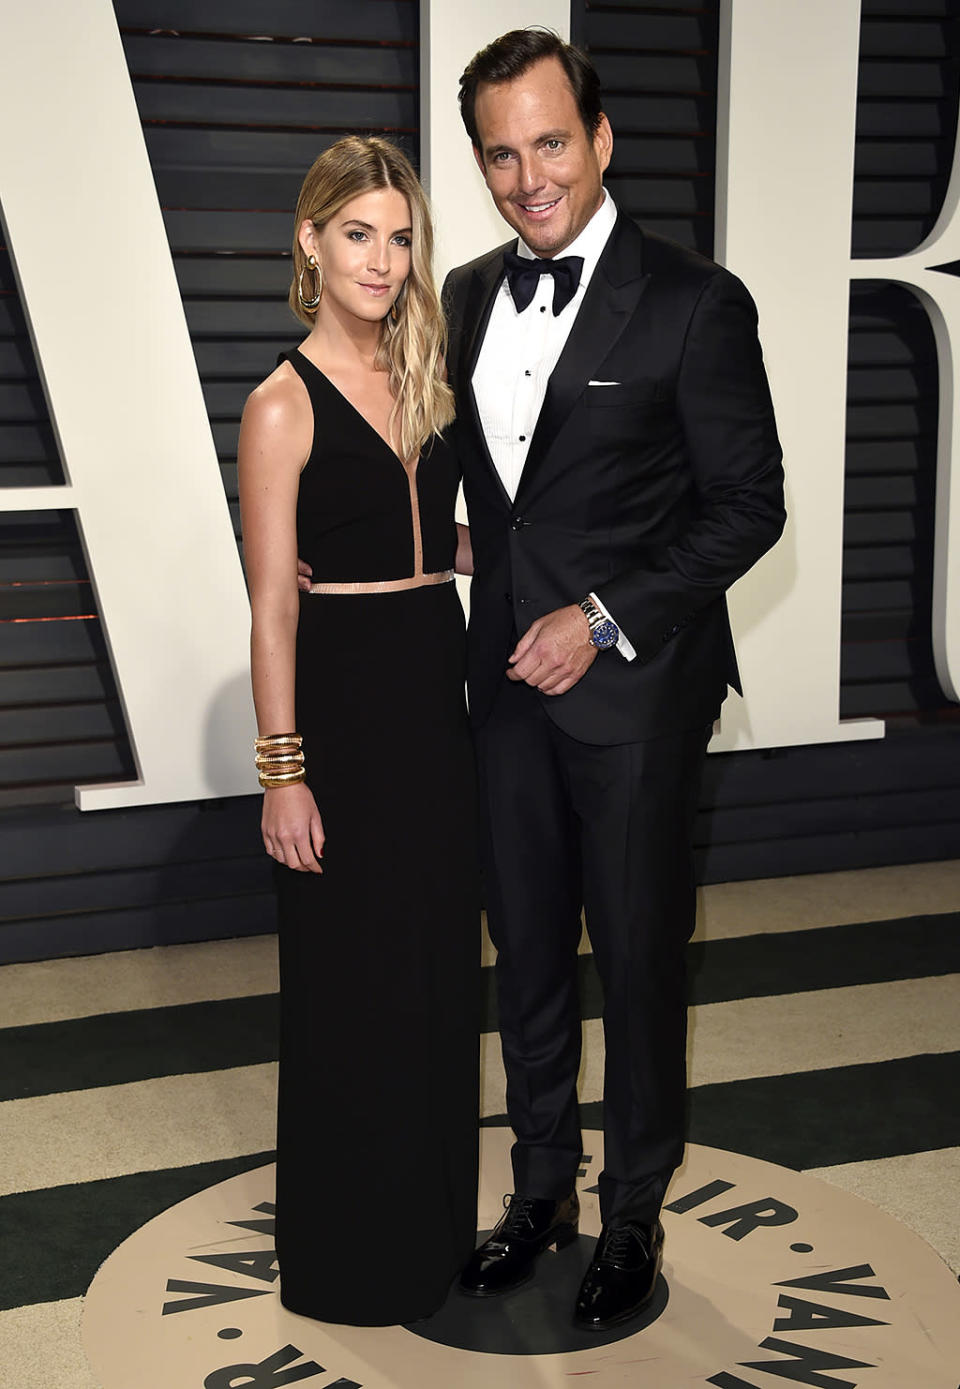 <p>Elizabeth Law and Will Arnett arrive at the Vanity Fair Oscar Party on Sunday, Feb. 26, 2017, in Beverly Hills, Calif. (Photo by Evan Agostini/Invision/AP) </p>